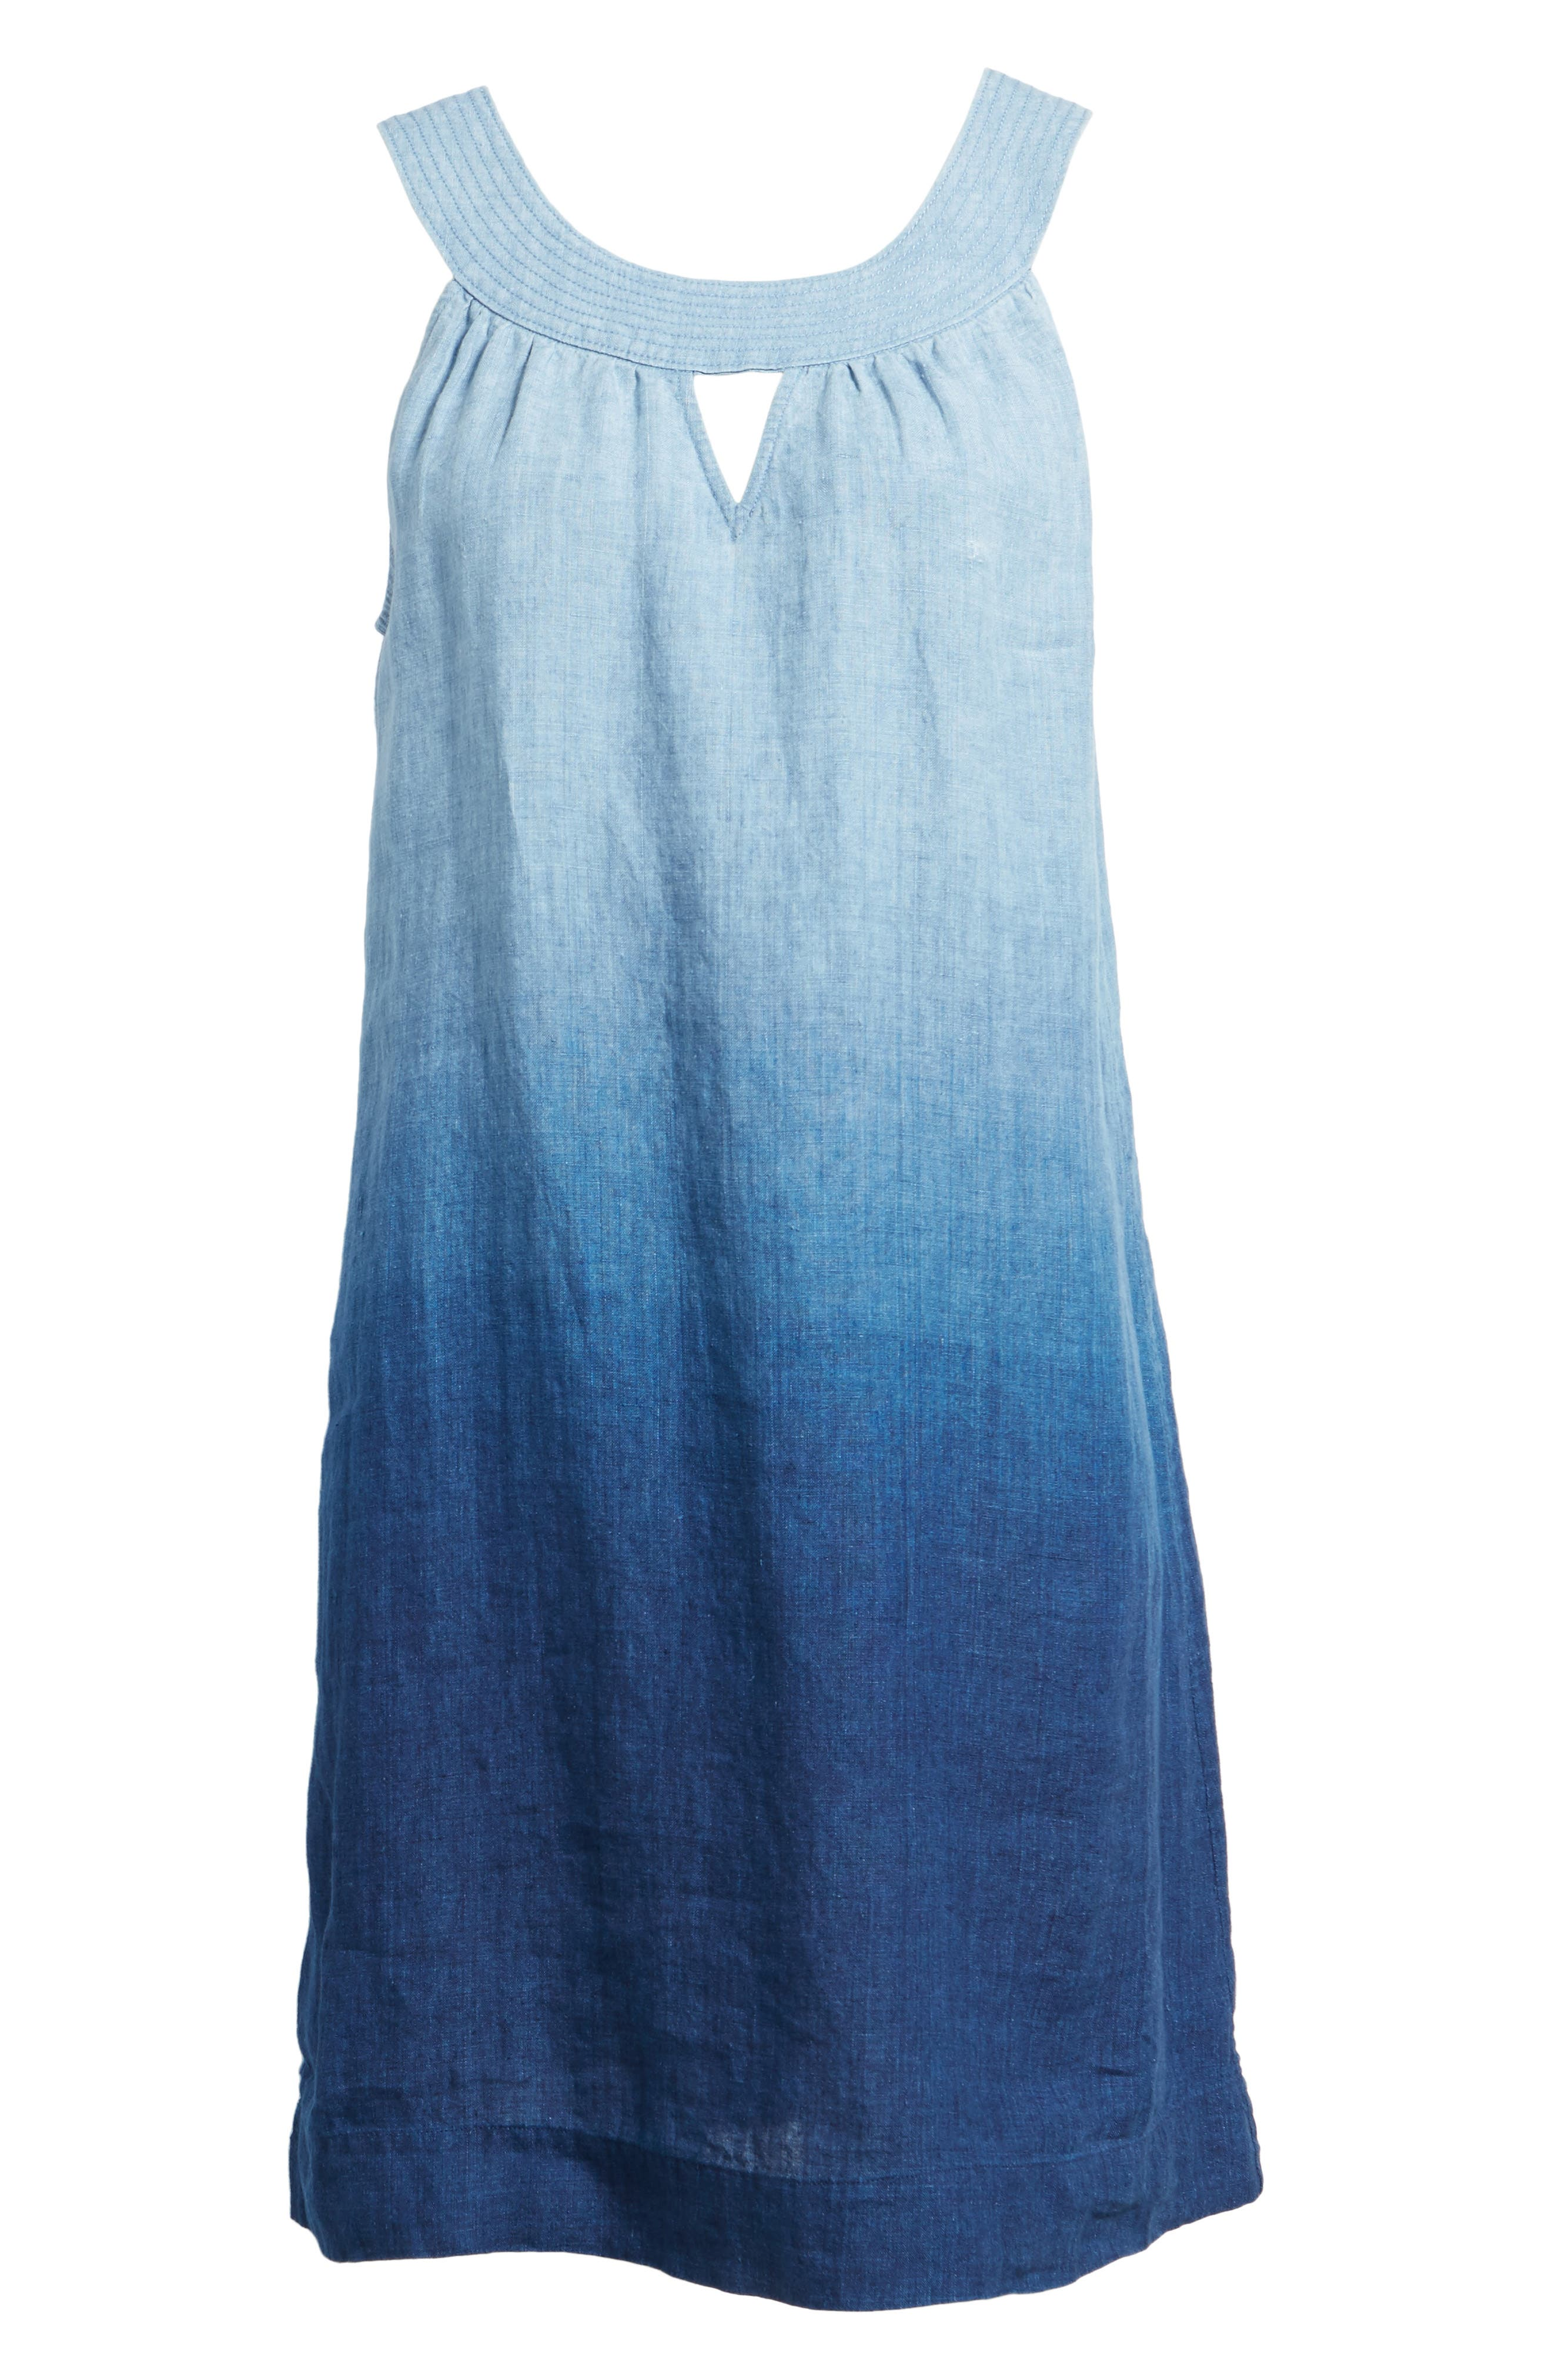 Indigo Dip Dyed Shift Dress,                             Alternate thumbnail 6, color,